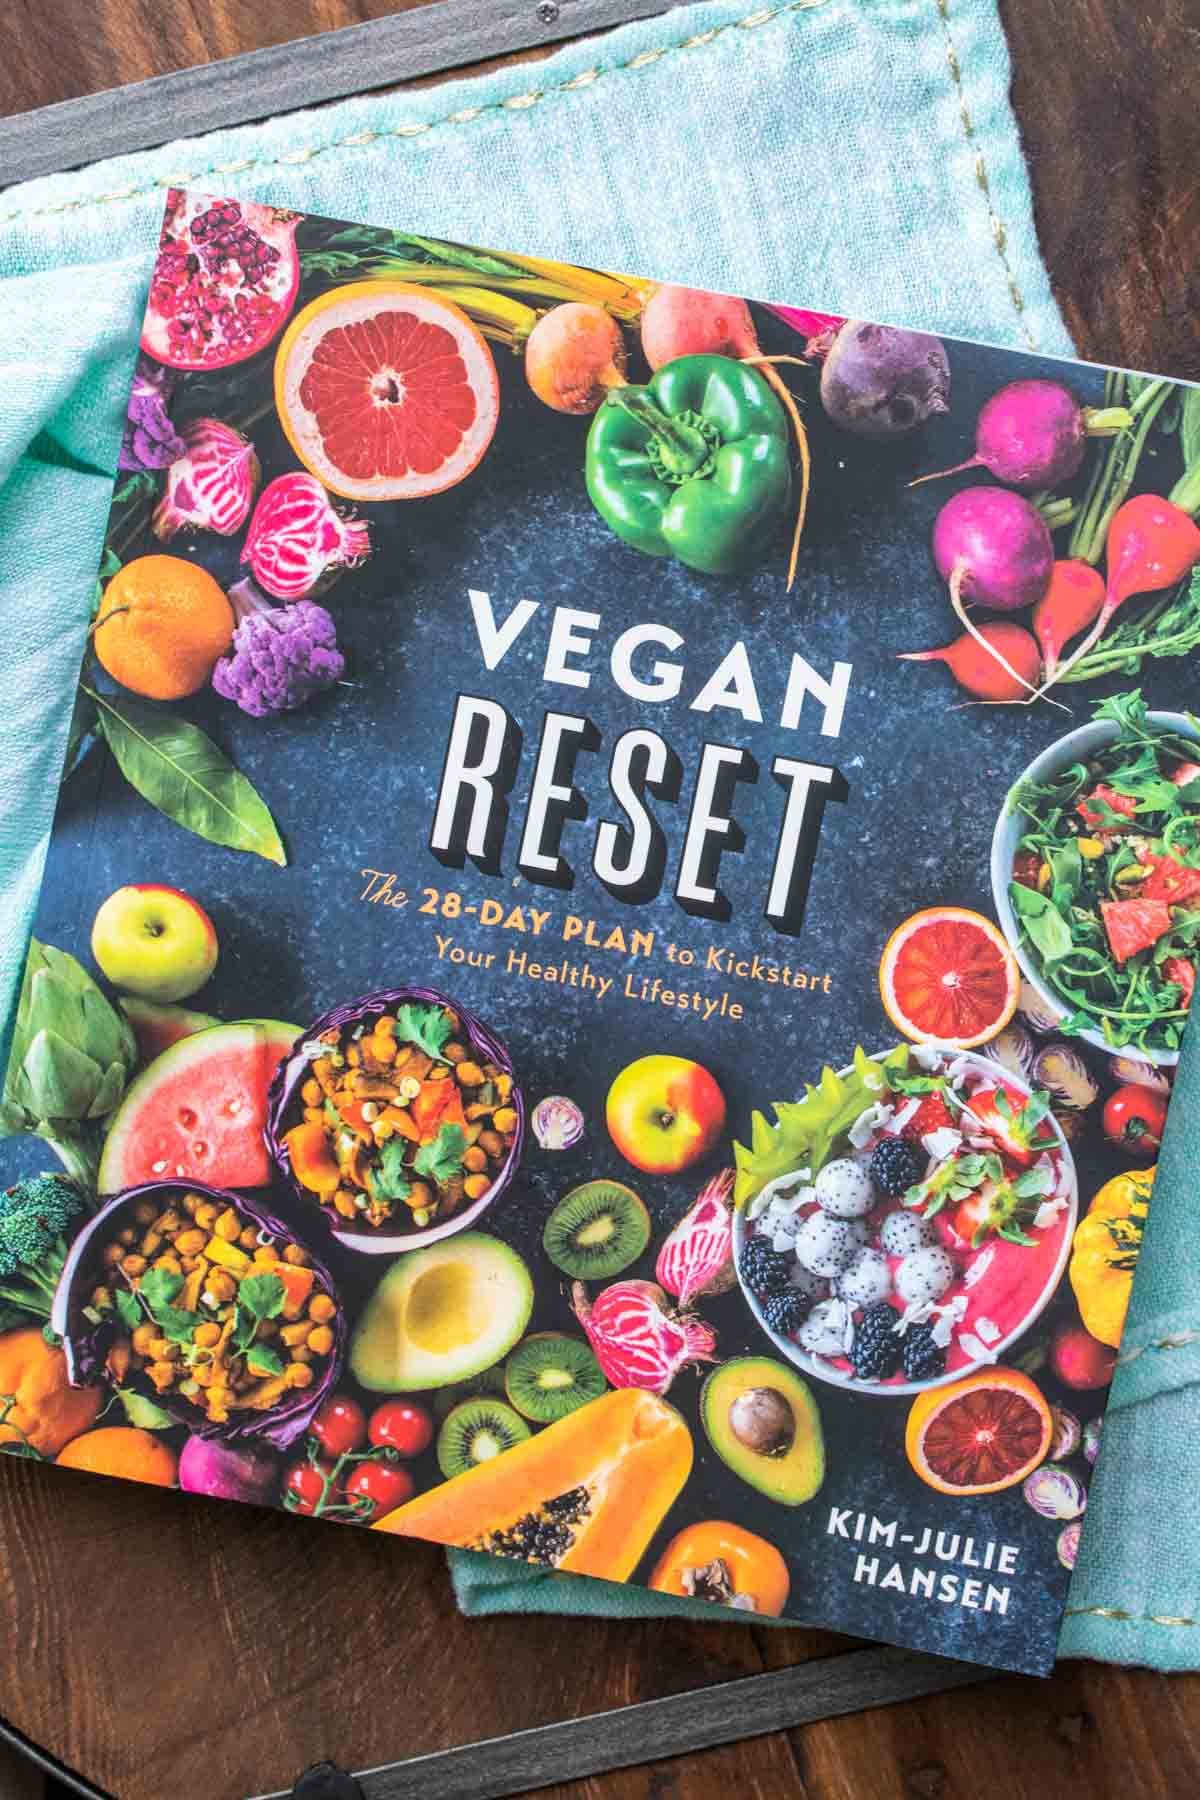 Cover of a vegan cookbook with veggies and fruits on the front